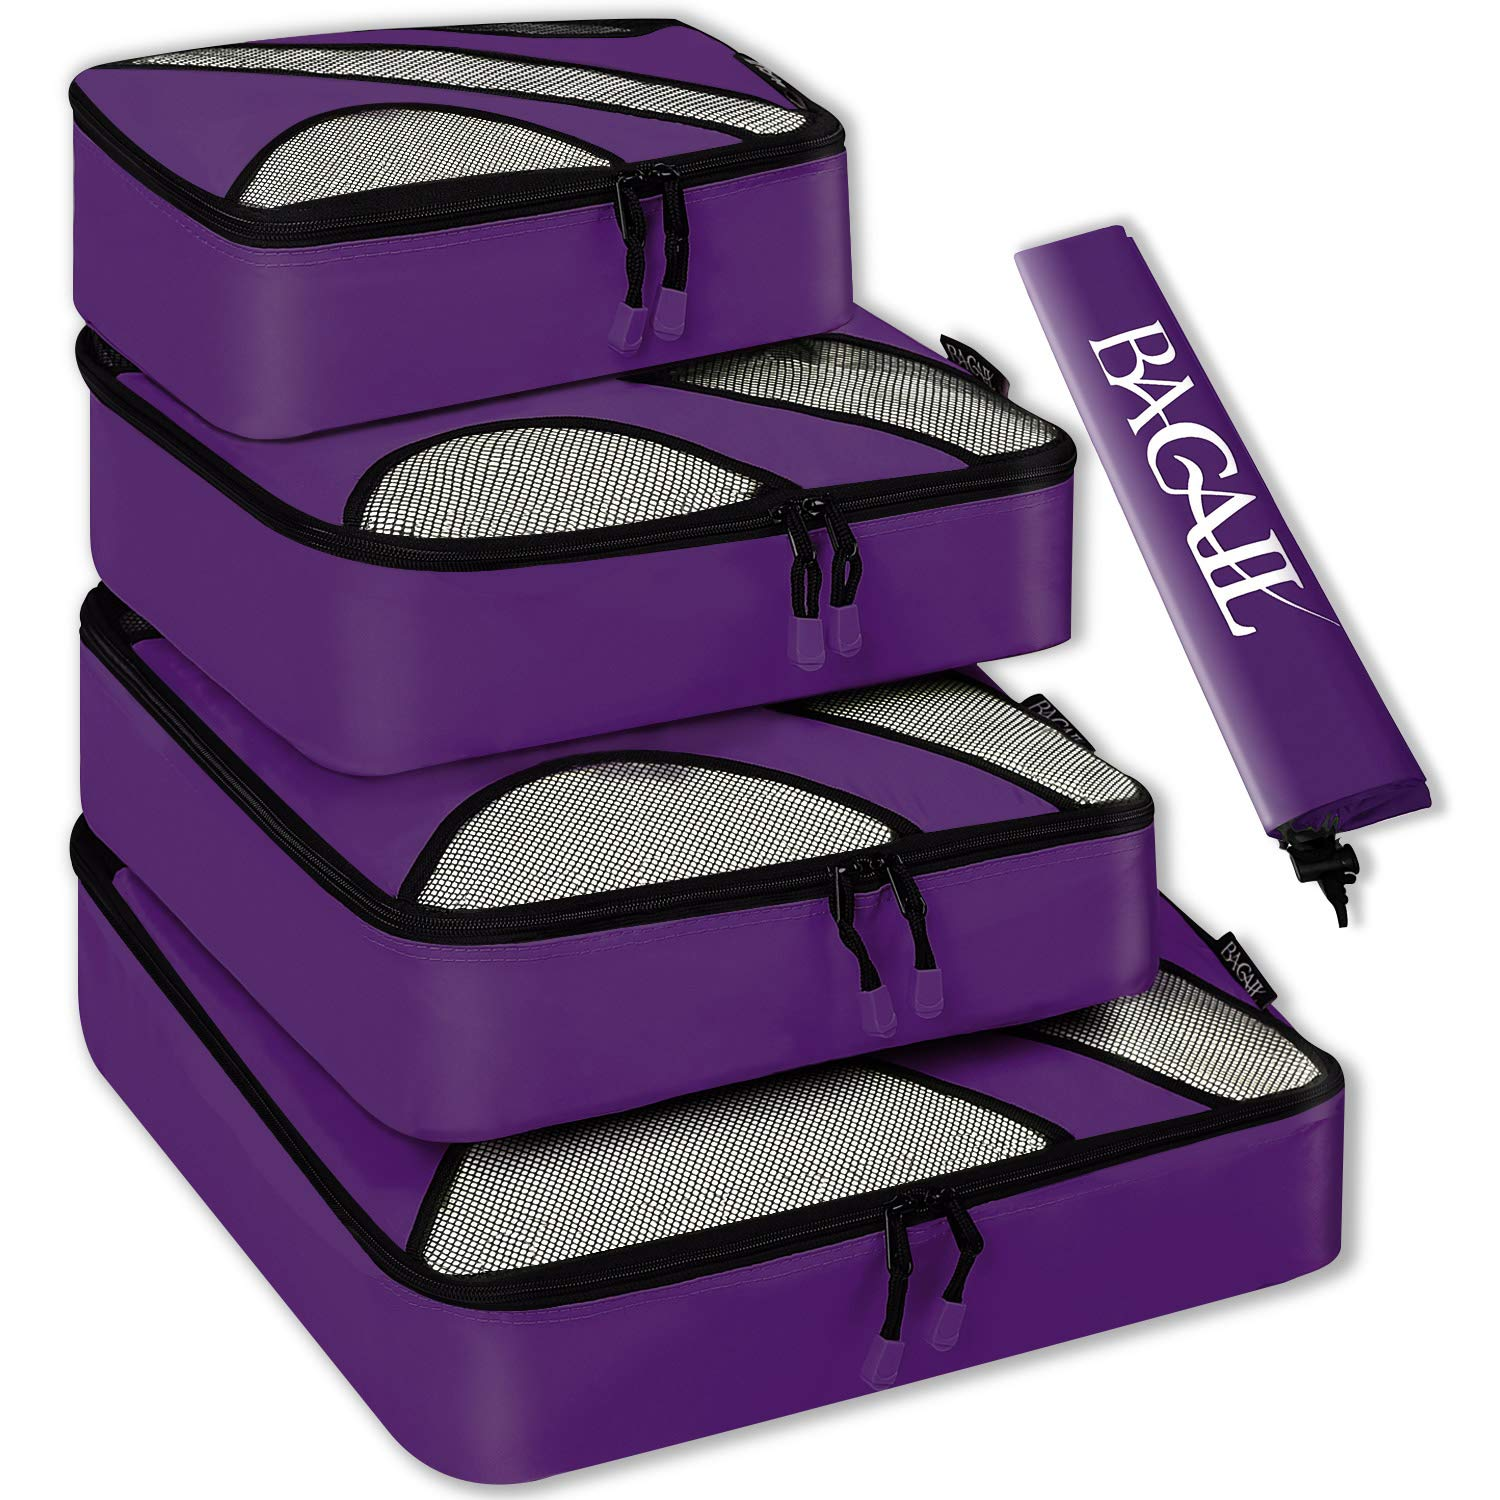 4 Set Packing Cubes,Travel Luggage Packing Organizers with Laundry Bag Purple product image